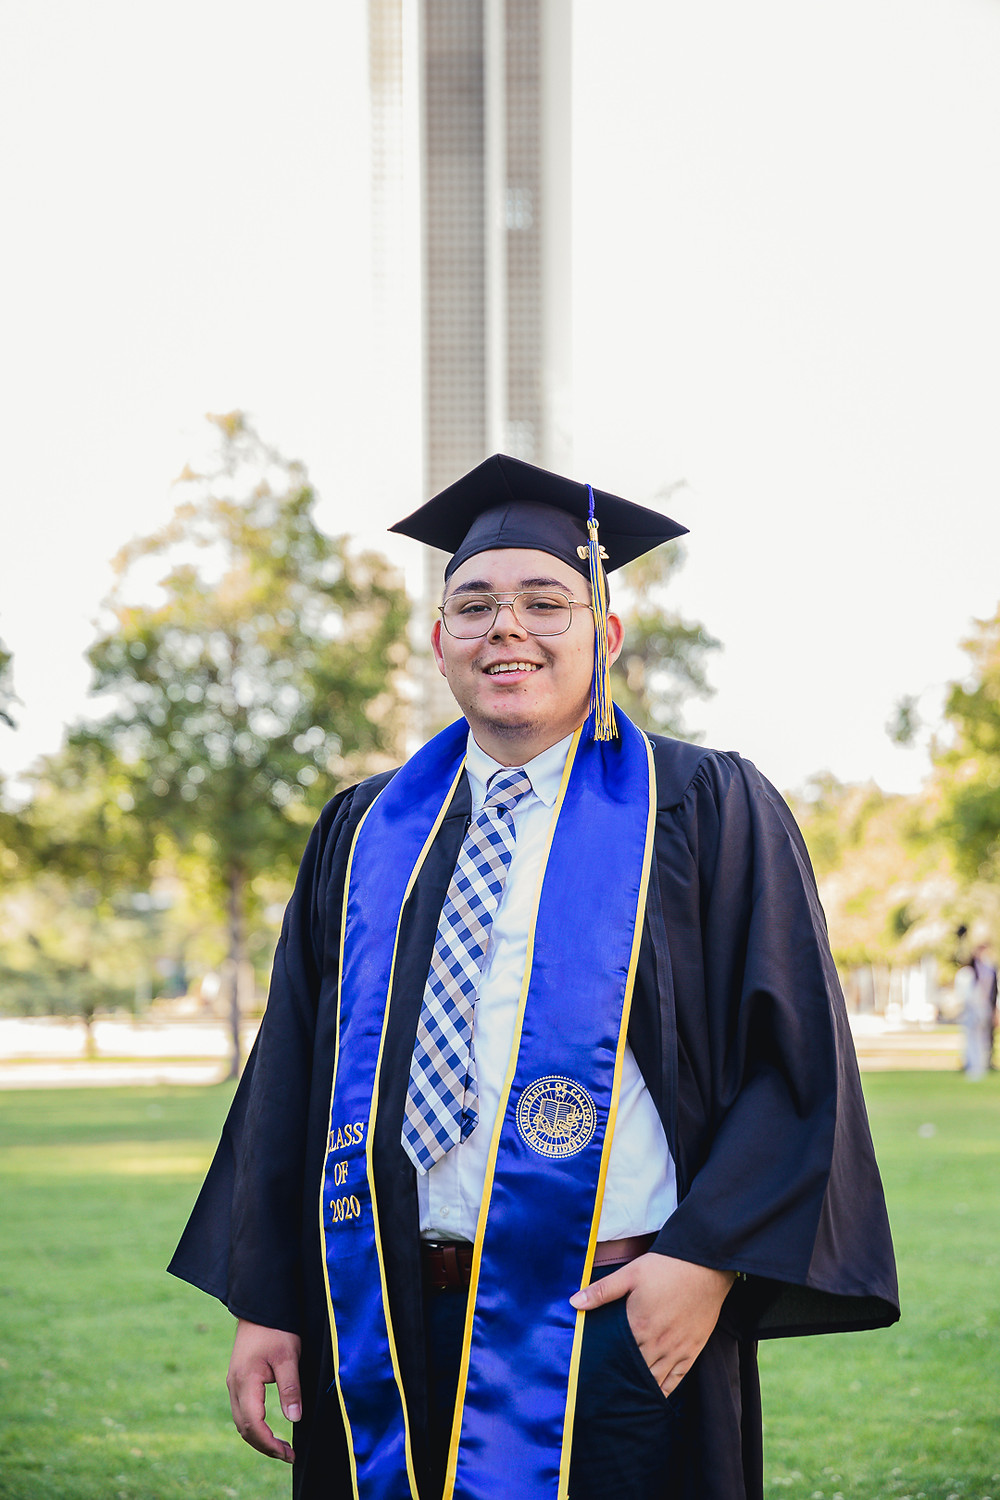 University of California Riverside Graduation Photos | Kassandra and Angel 9